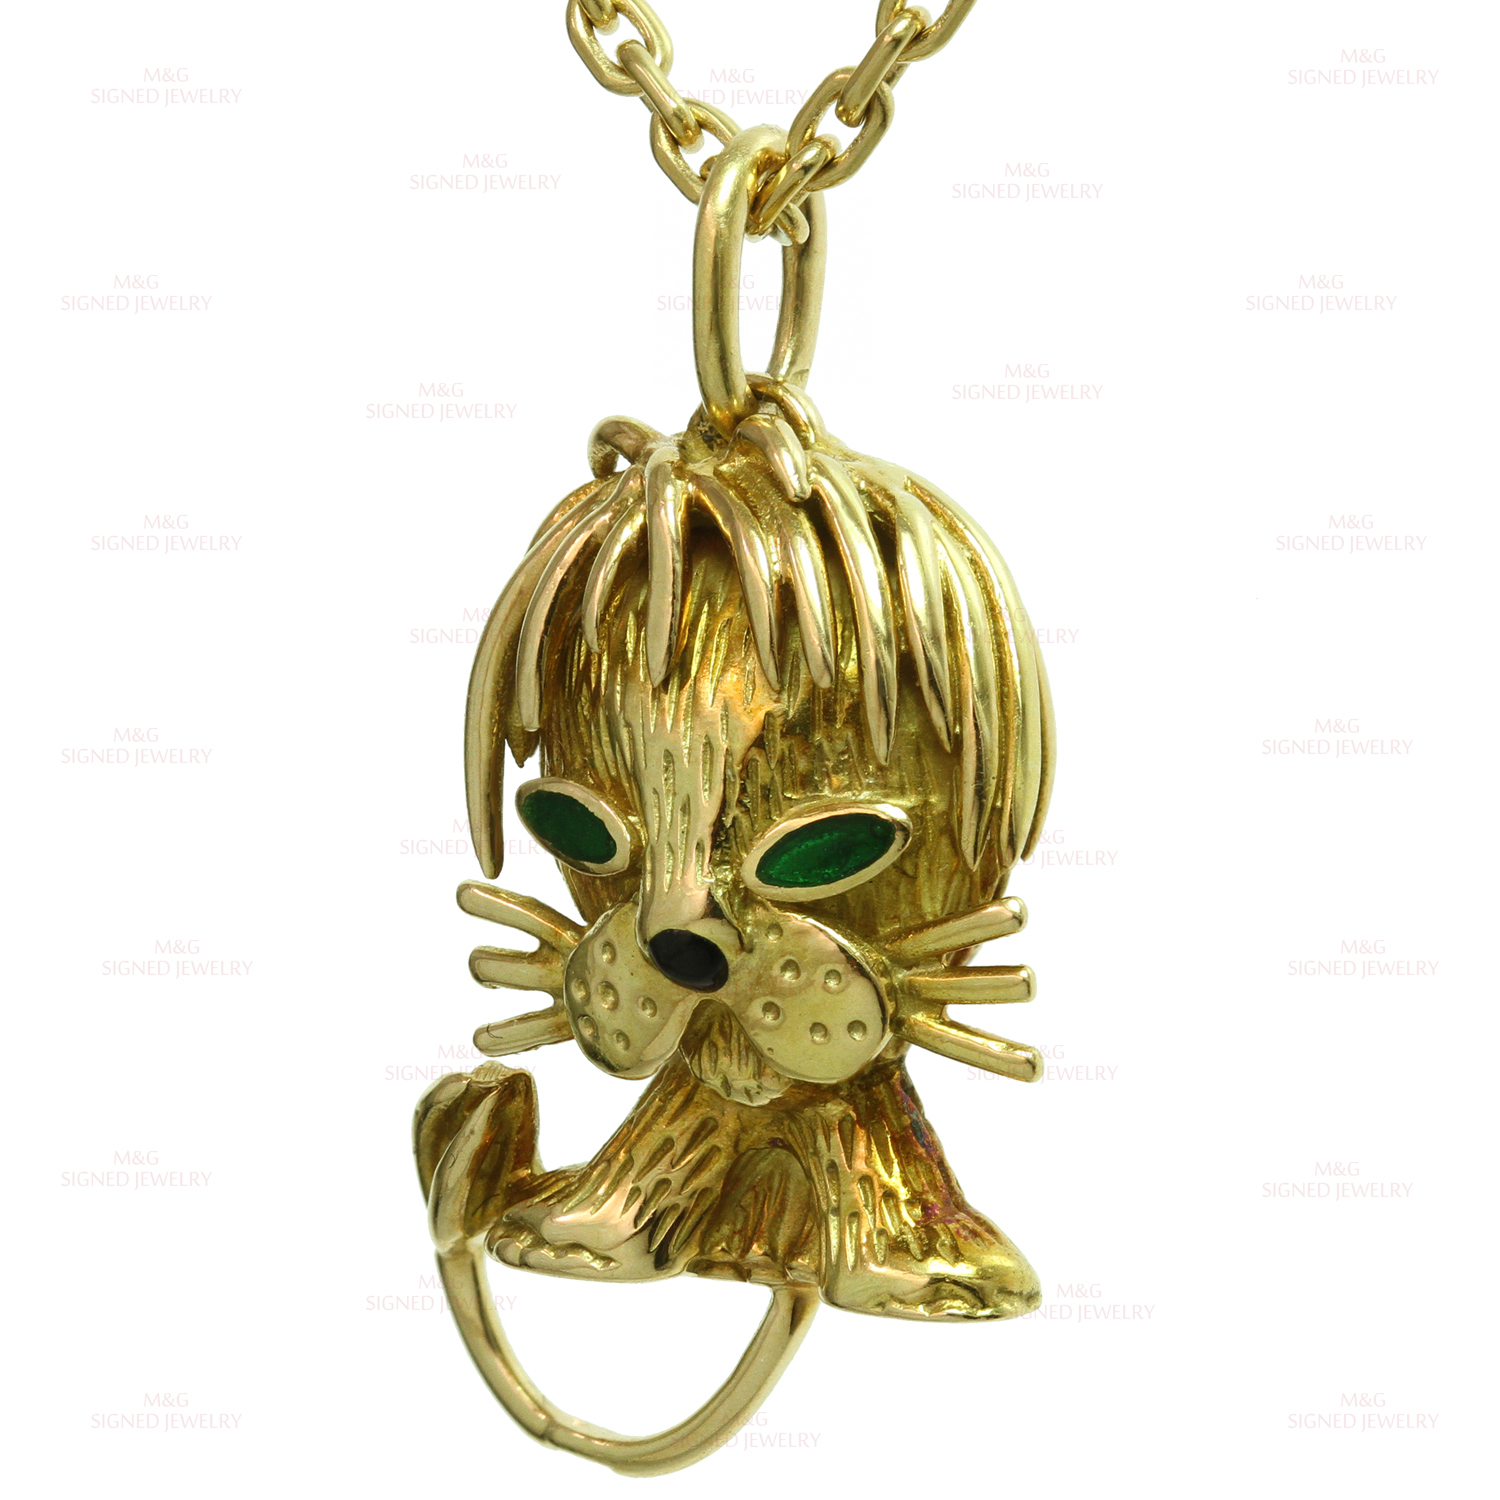 item getsubject necklace suspension alloy steampunk retro lion jewelery pendant aeproduct punk choker anime male vintage bronze and female